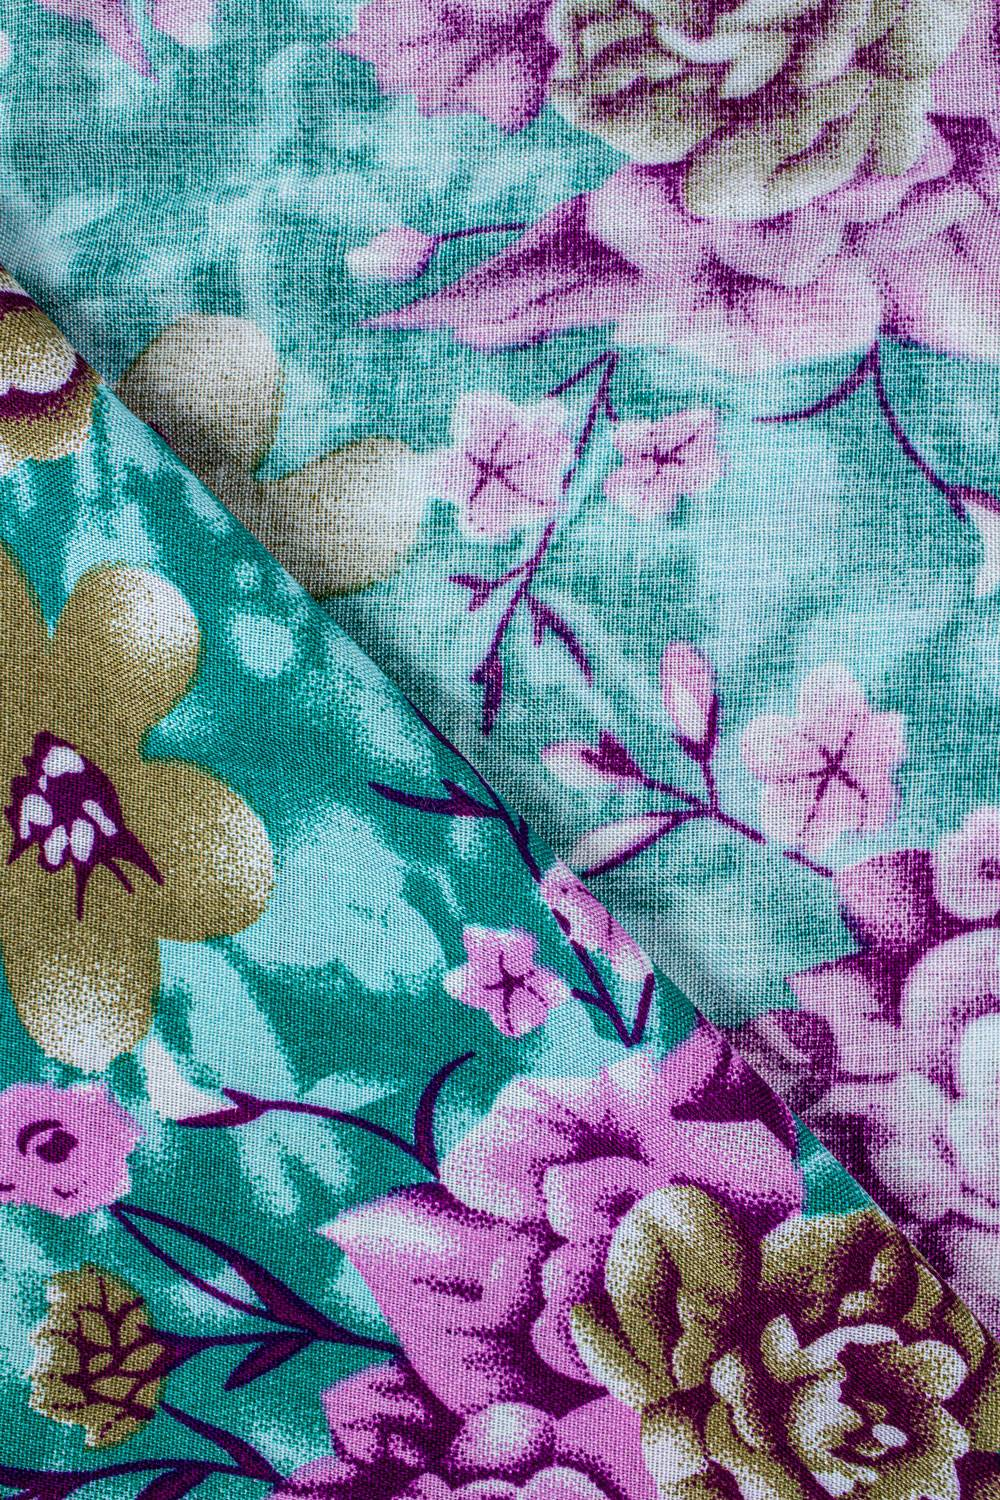 Fabric - Viscose - Turquoise With Pink Flowers - 140 cm - 130 g/m2